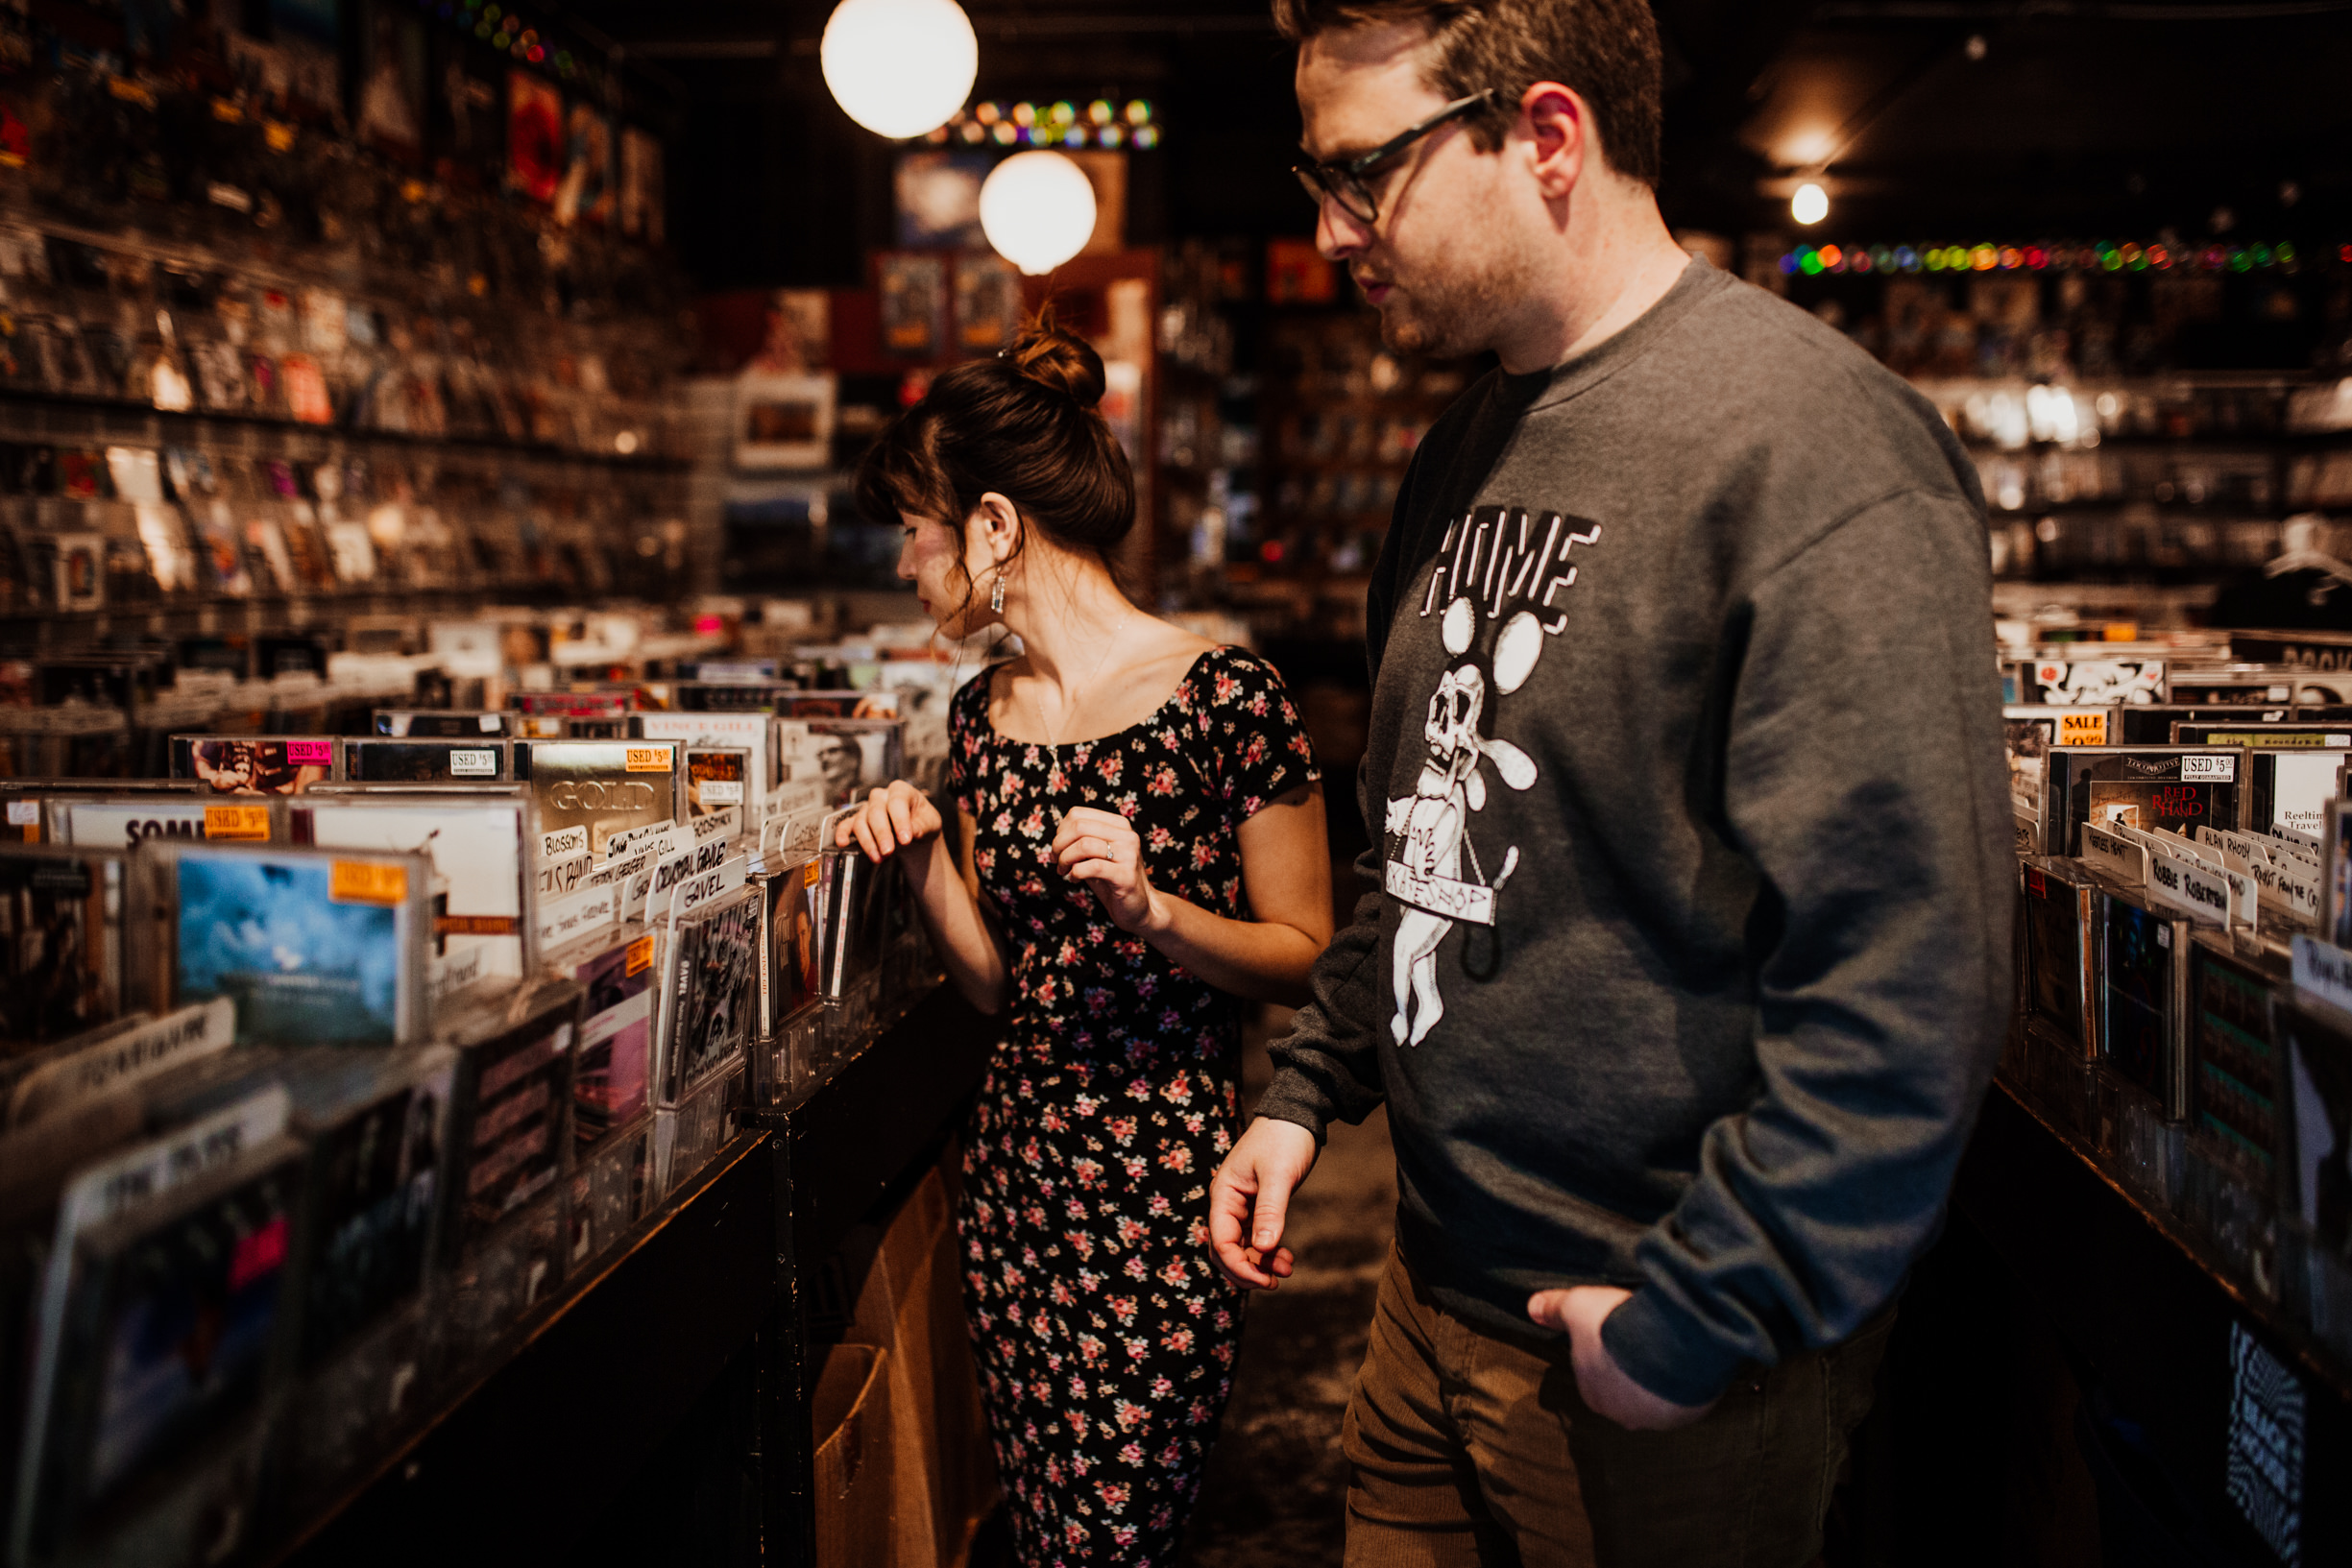 louisville-engagement-photographer-record-store-in-home-session-crystal-ludwick-photo (47 of 53).jpg